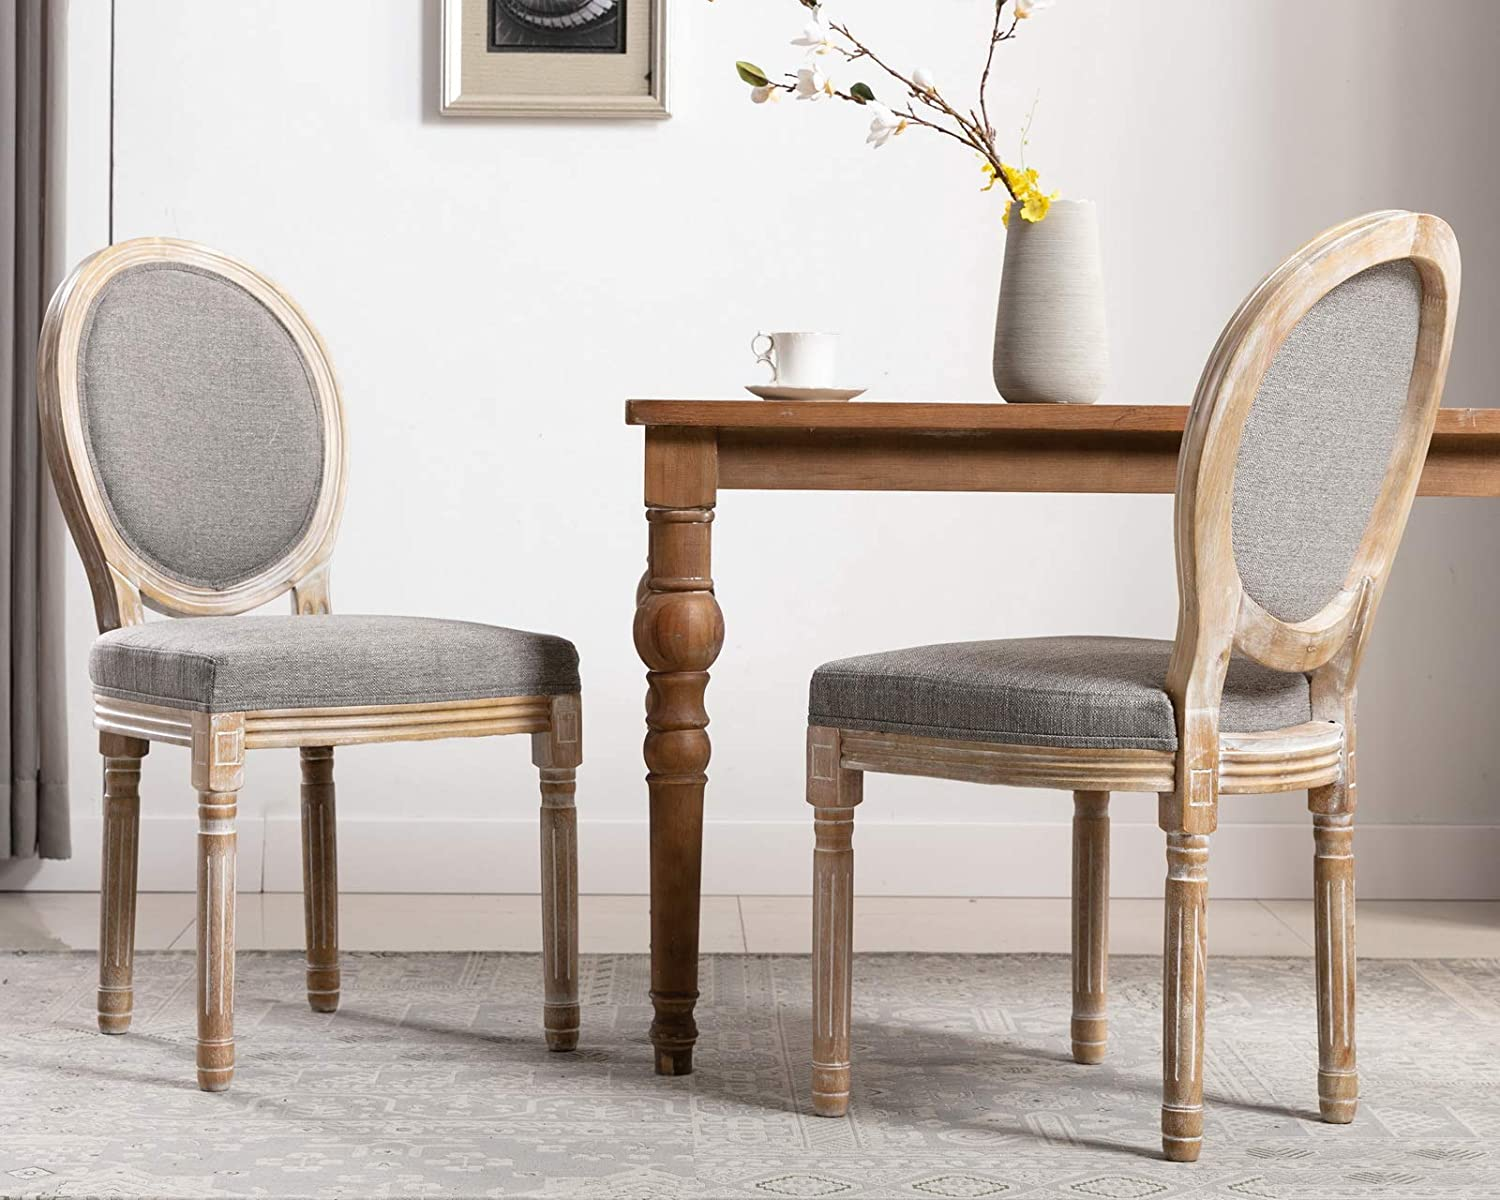 CIMOTA French Dining Chairs Set of 2, Upholstered Vintage Elegant Farmhouse Chair with Round Back Distressed Wood, Mid Century Fabric Side Chairs for Dining Room Bedroom Restaurant, Grey